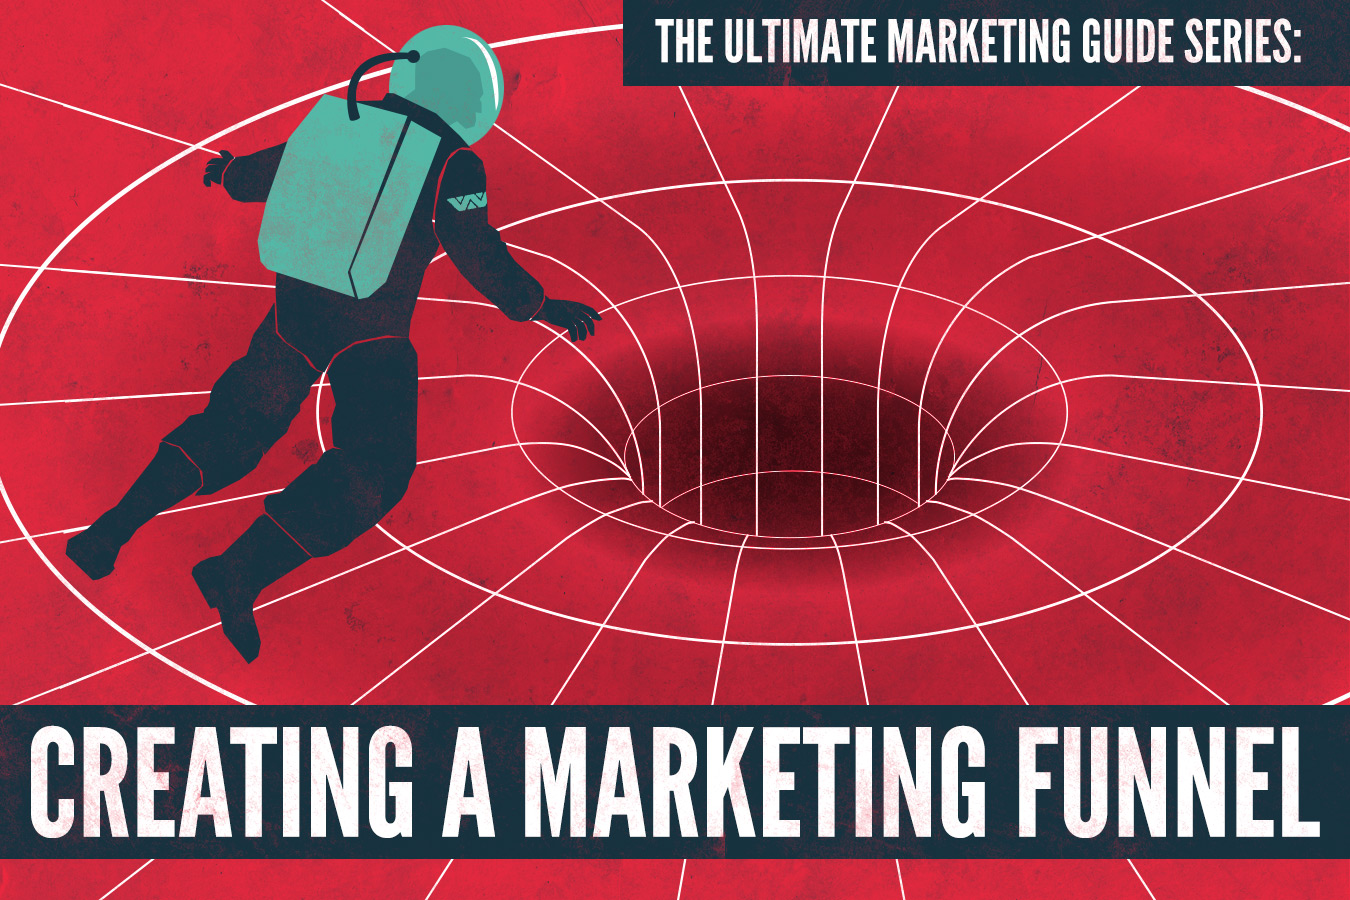 Ultimate Marketing Guide: Creating a marketing funnel